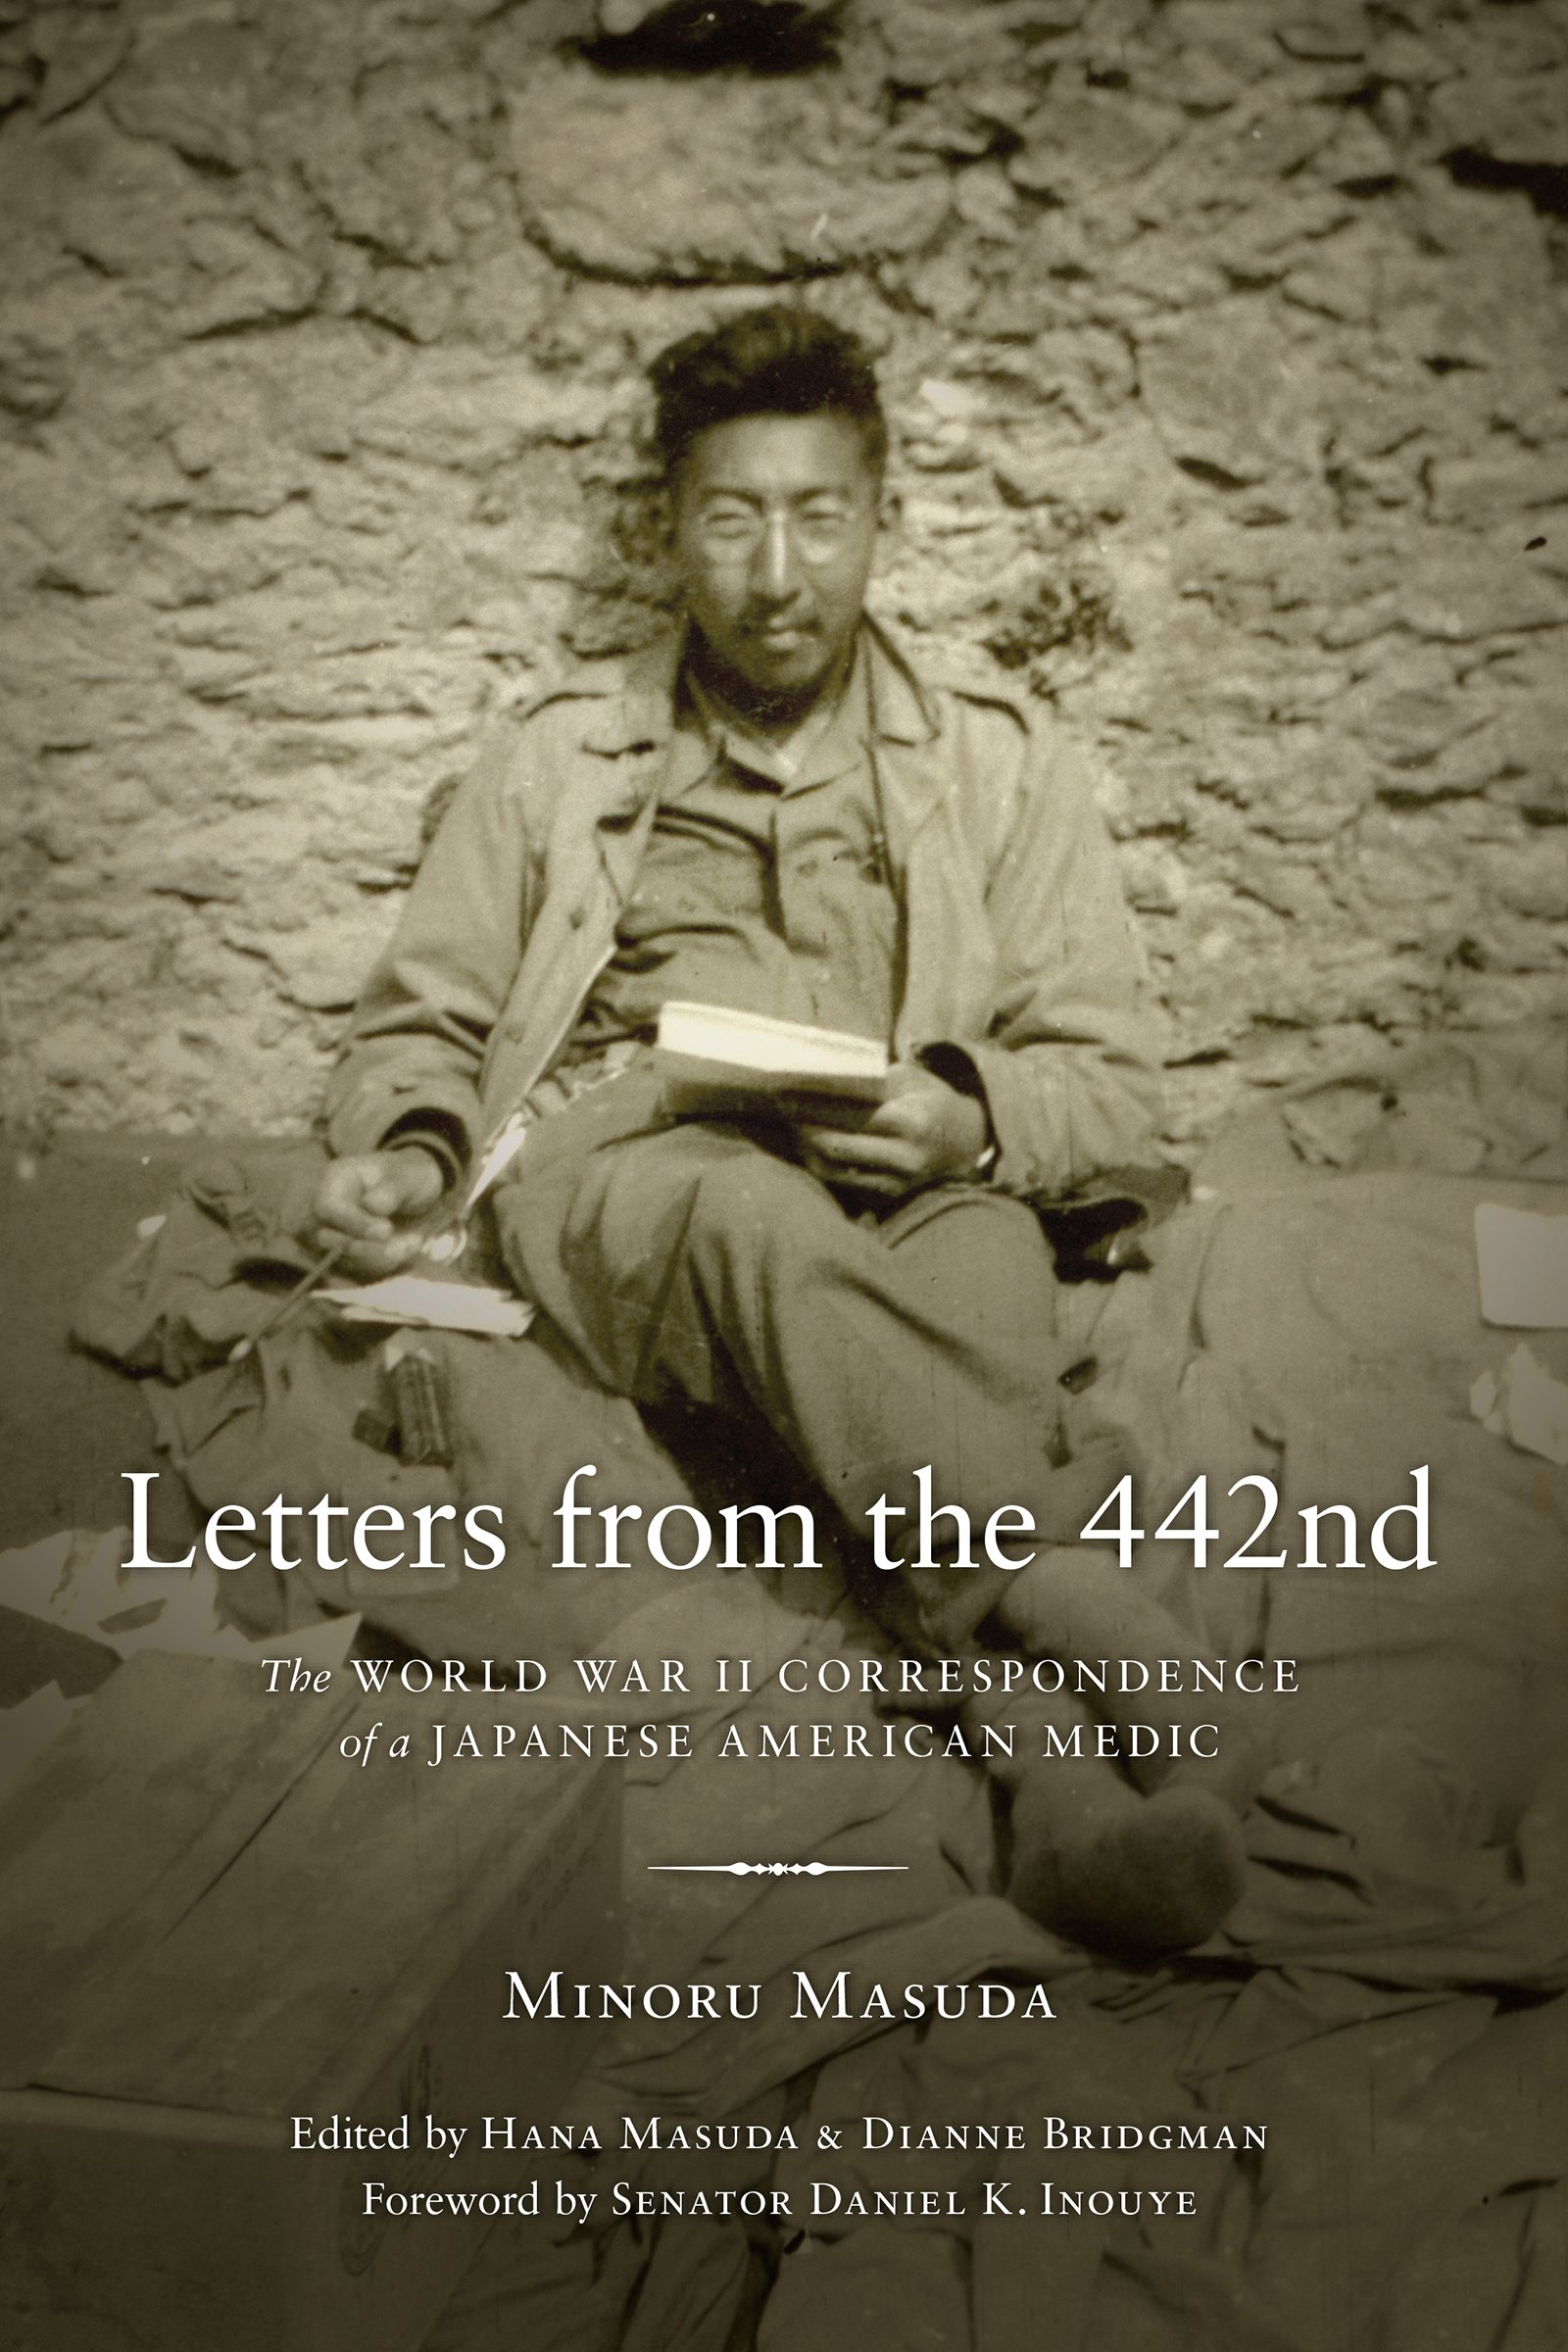 Amazon com: Letters from the 442nd: The World War II